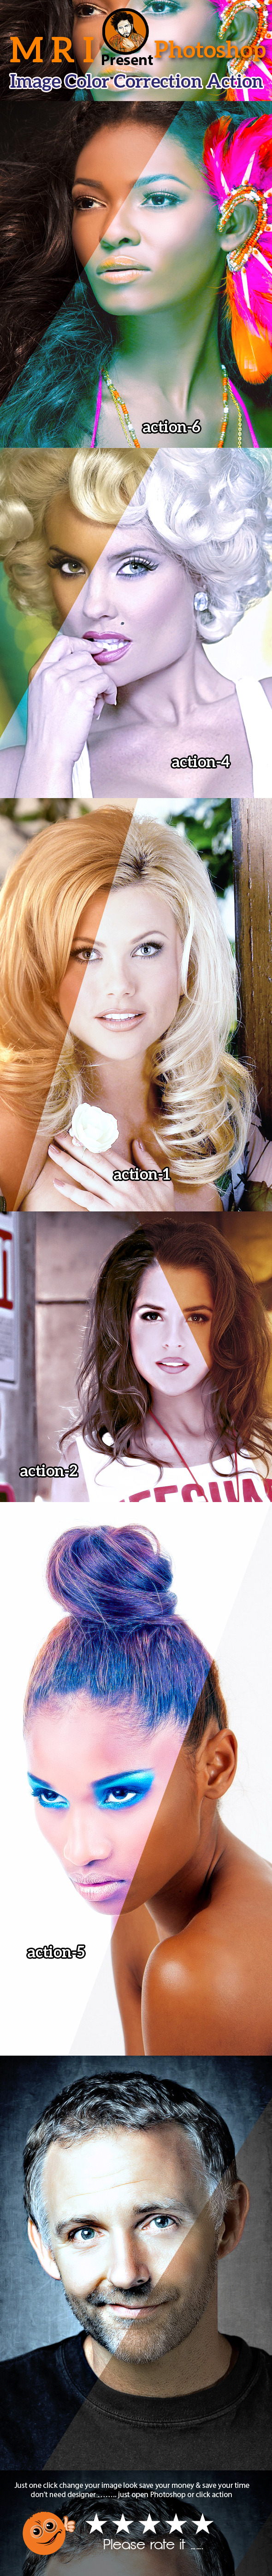 Image Color Correction - Actions Photoshop